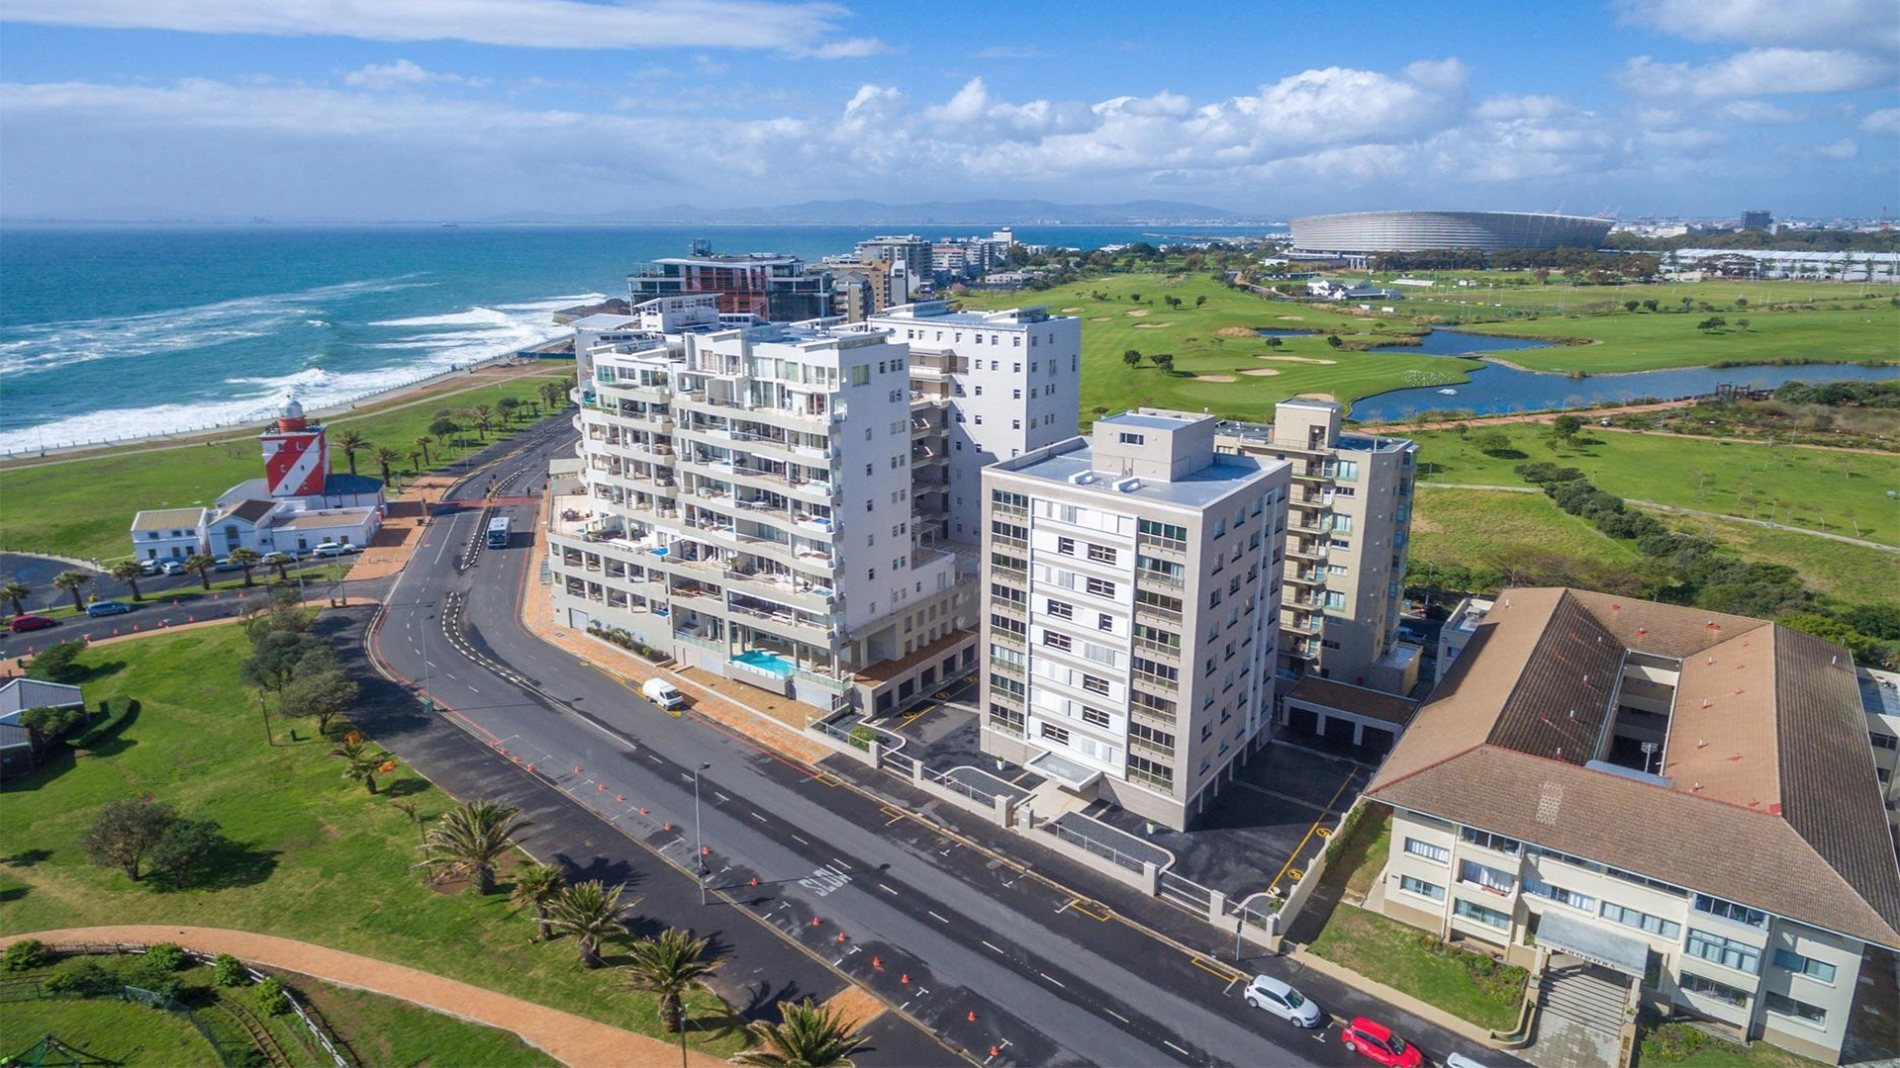 Atlantic Seaboard compares favourably on global stage